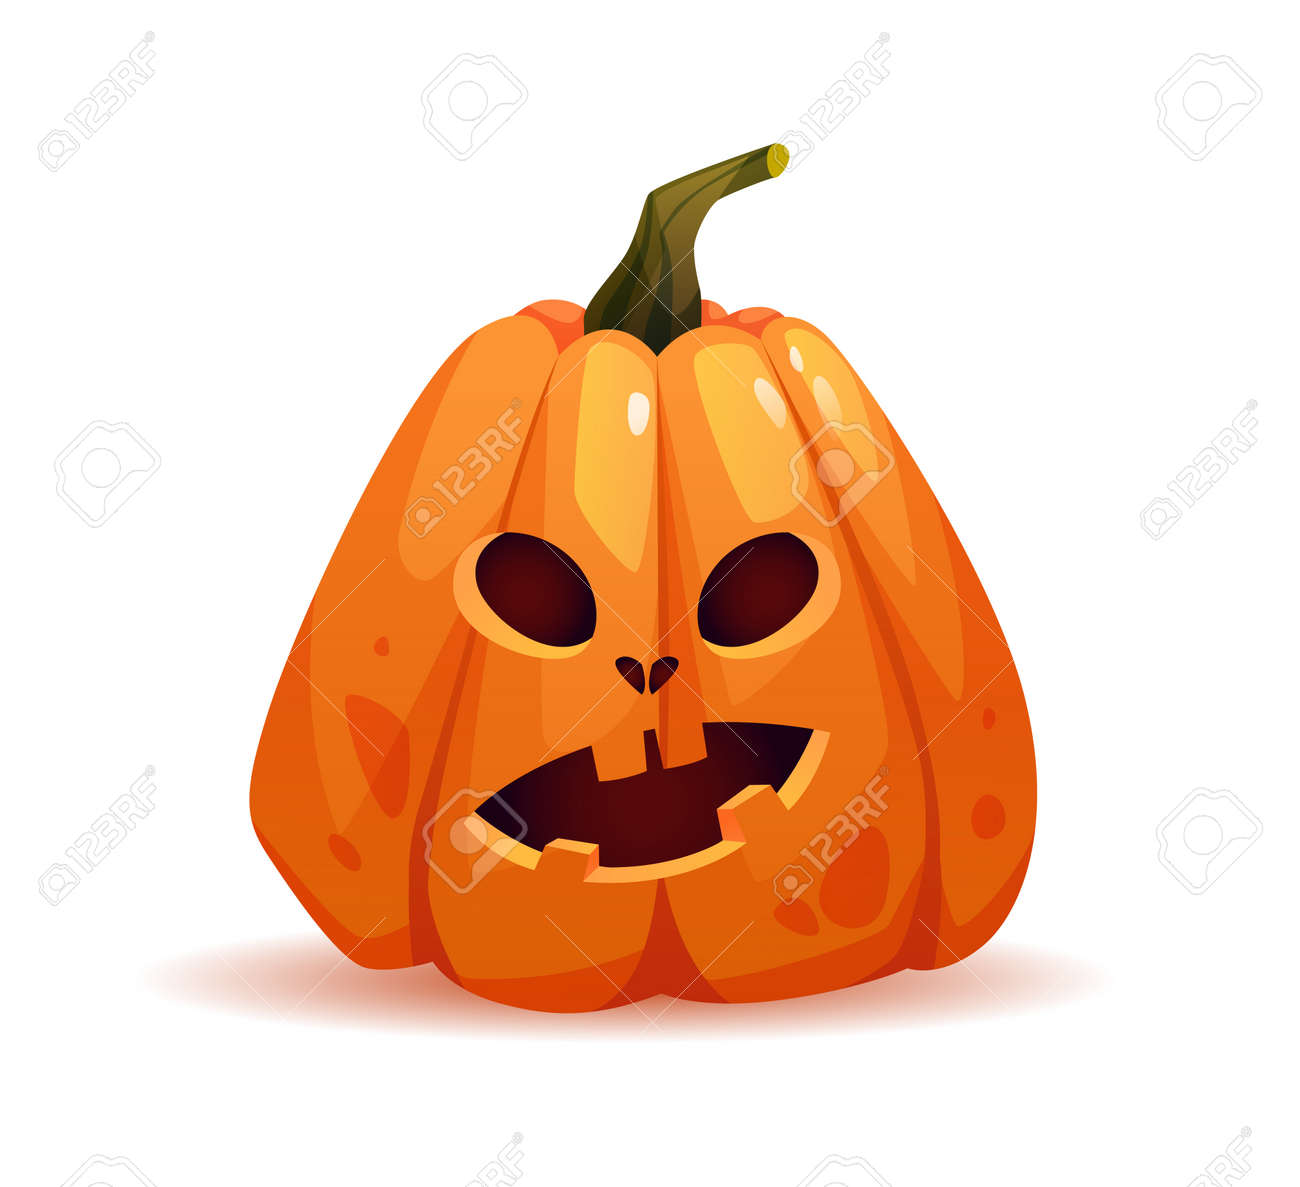 Shocked halloween pumpkin with wondering facial expression, autumn personage with emotion on face. Symbol of october harvest and celebration. Scary monster. Realistic cartoon character vector - 171582067